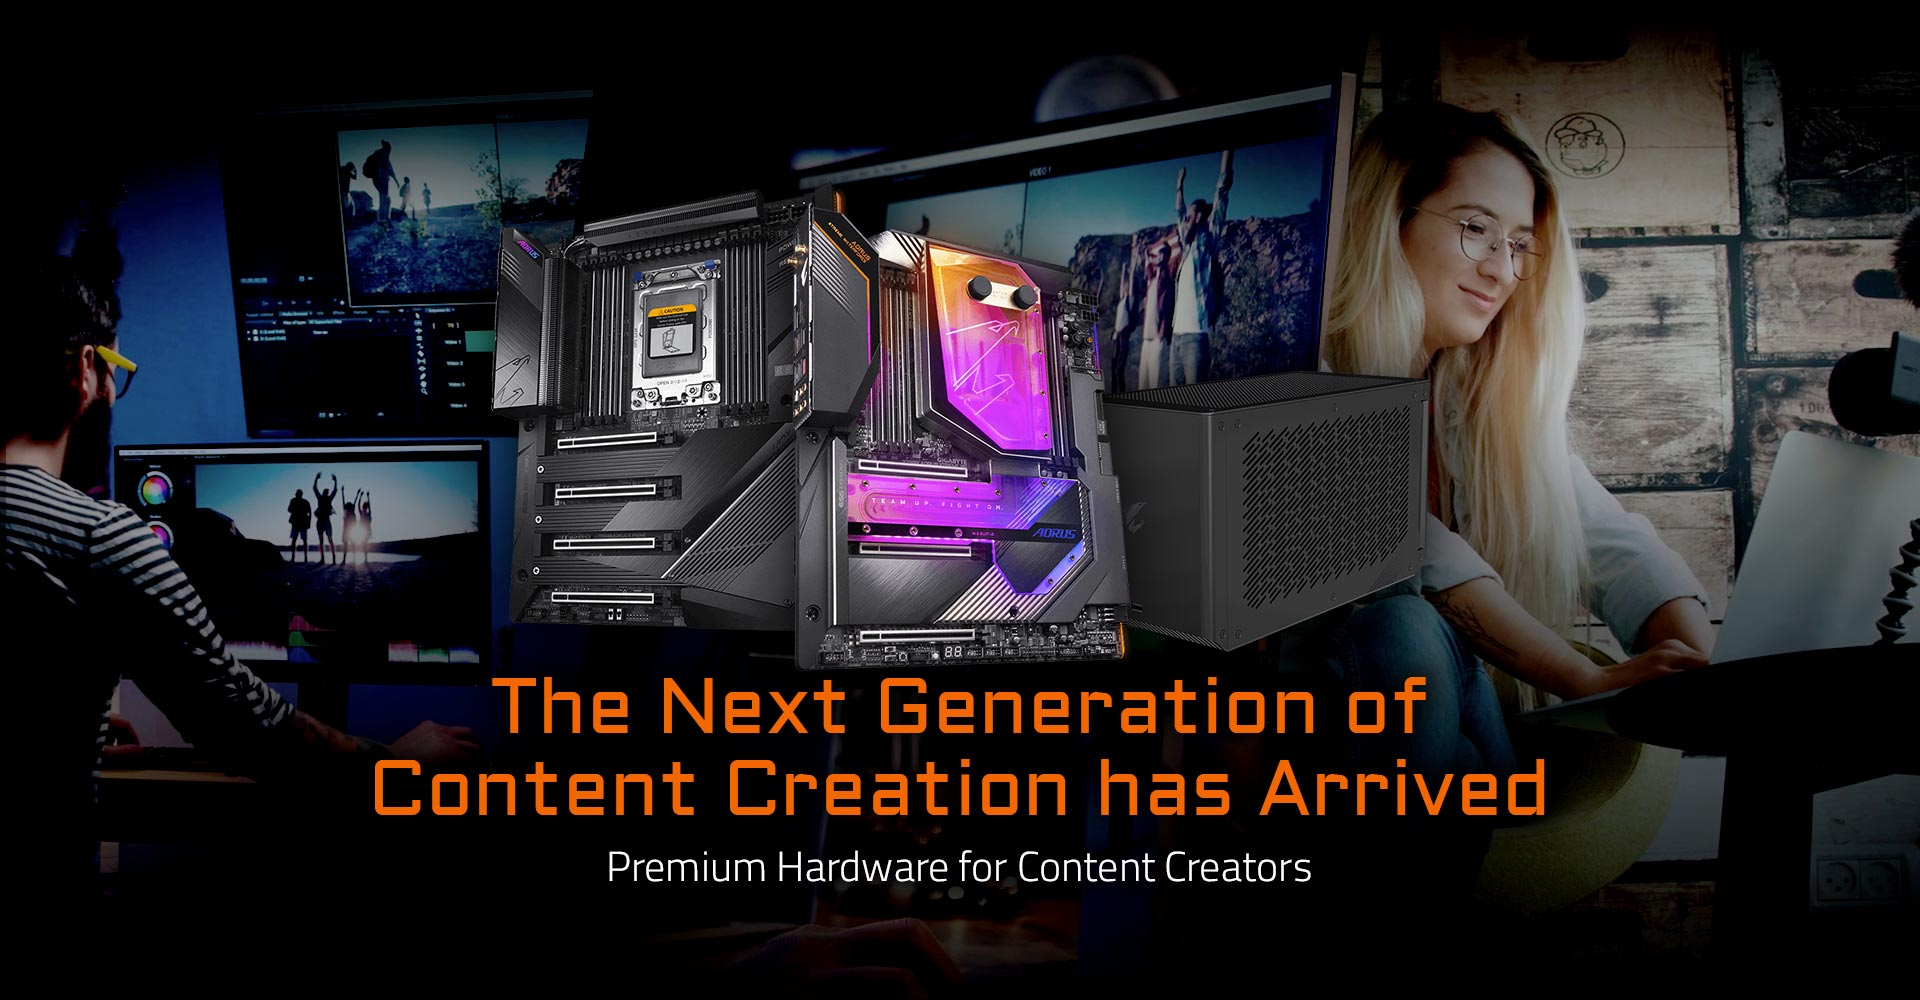 GIGABYTE Offers Top-of-the-line Hardware for Content Creators